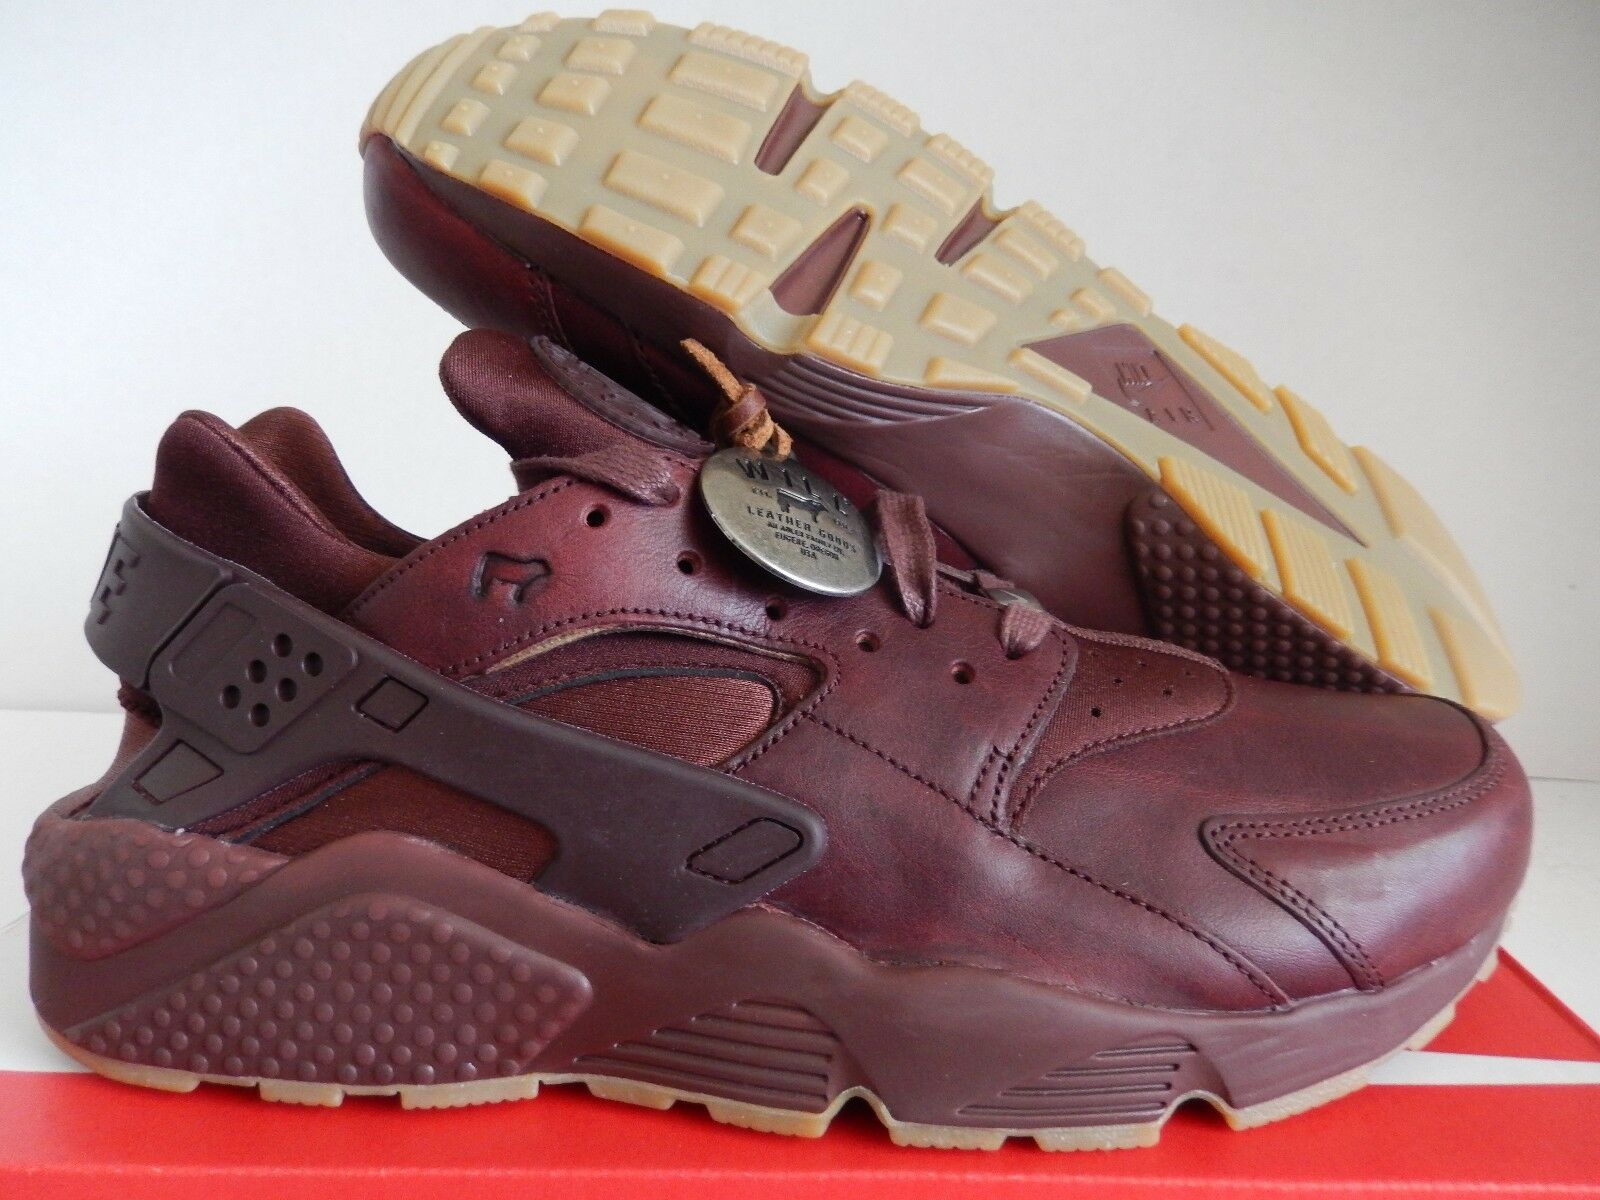 NIKE AIR HUARACHE ID WILL PREMIUM LEATHER CEDAR Marronee SZ 11 [918438-991]